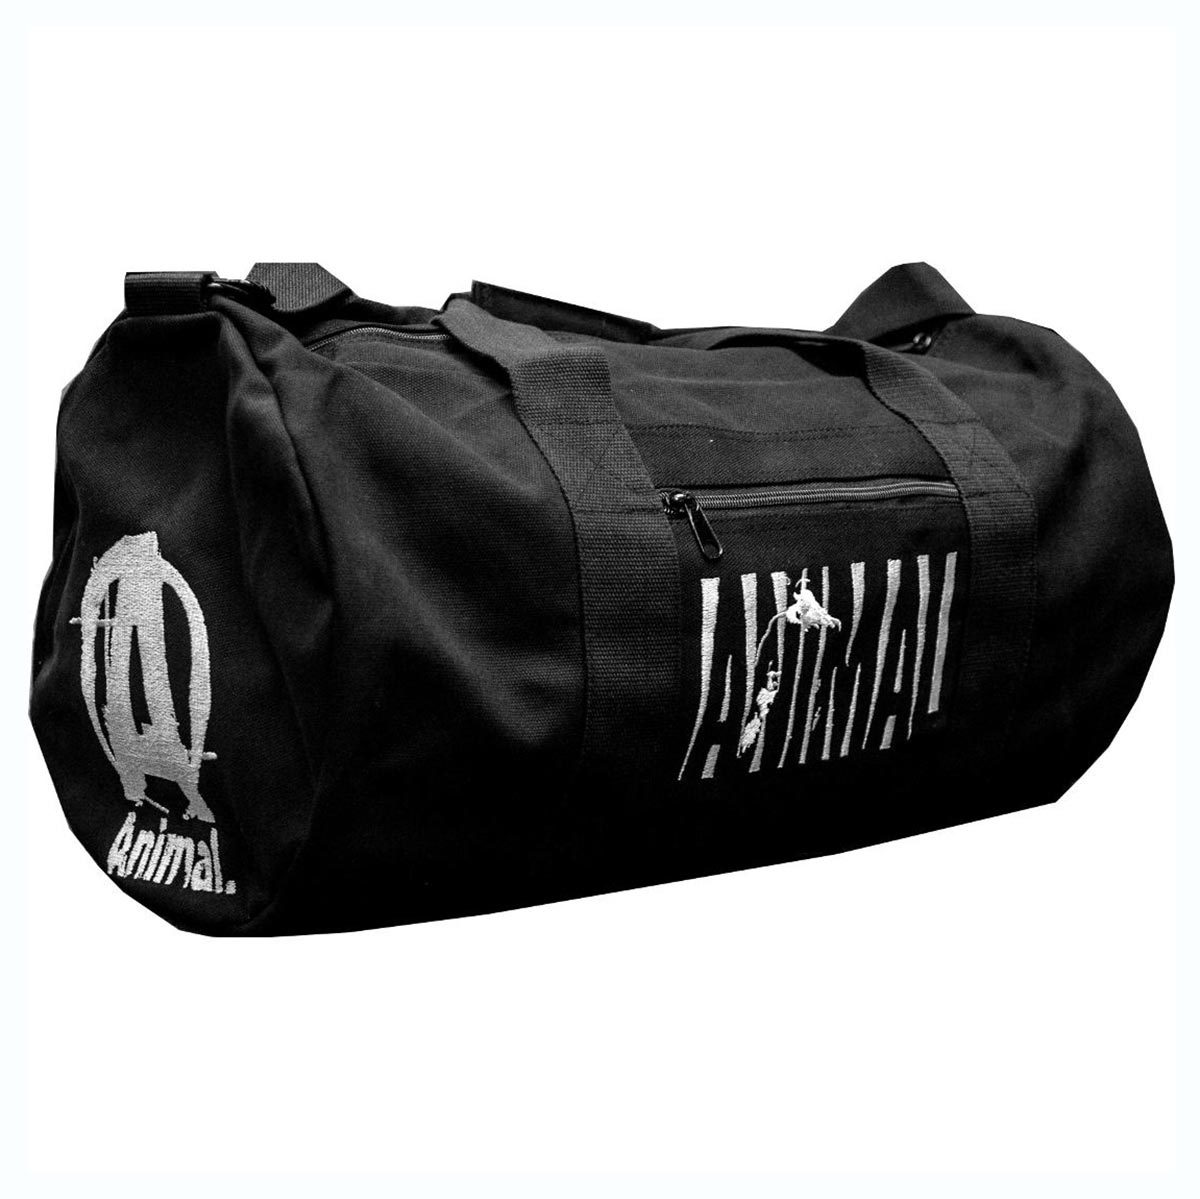 Universal Animal Gym Bag Fitness Accessories and Apparel Universal  (1058804924459)